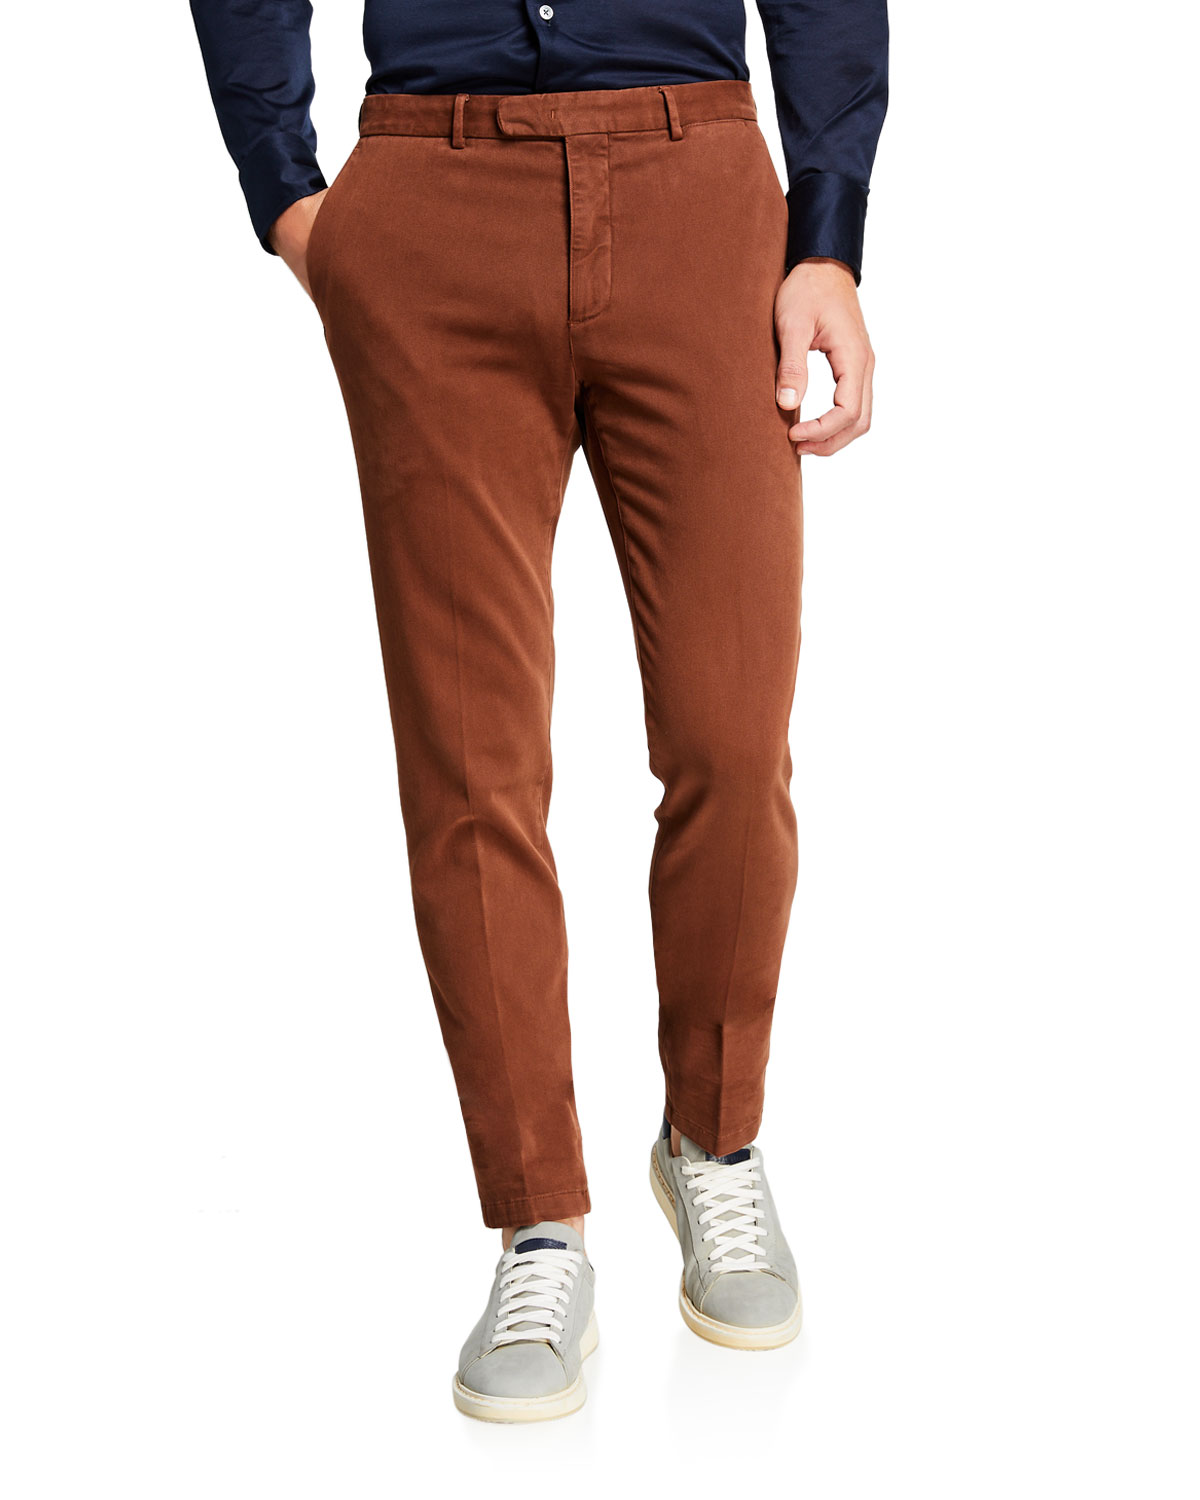 Boglioli Pants MEN'S SLIM-FIT STRETCH-COTTON TROUSERS